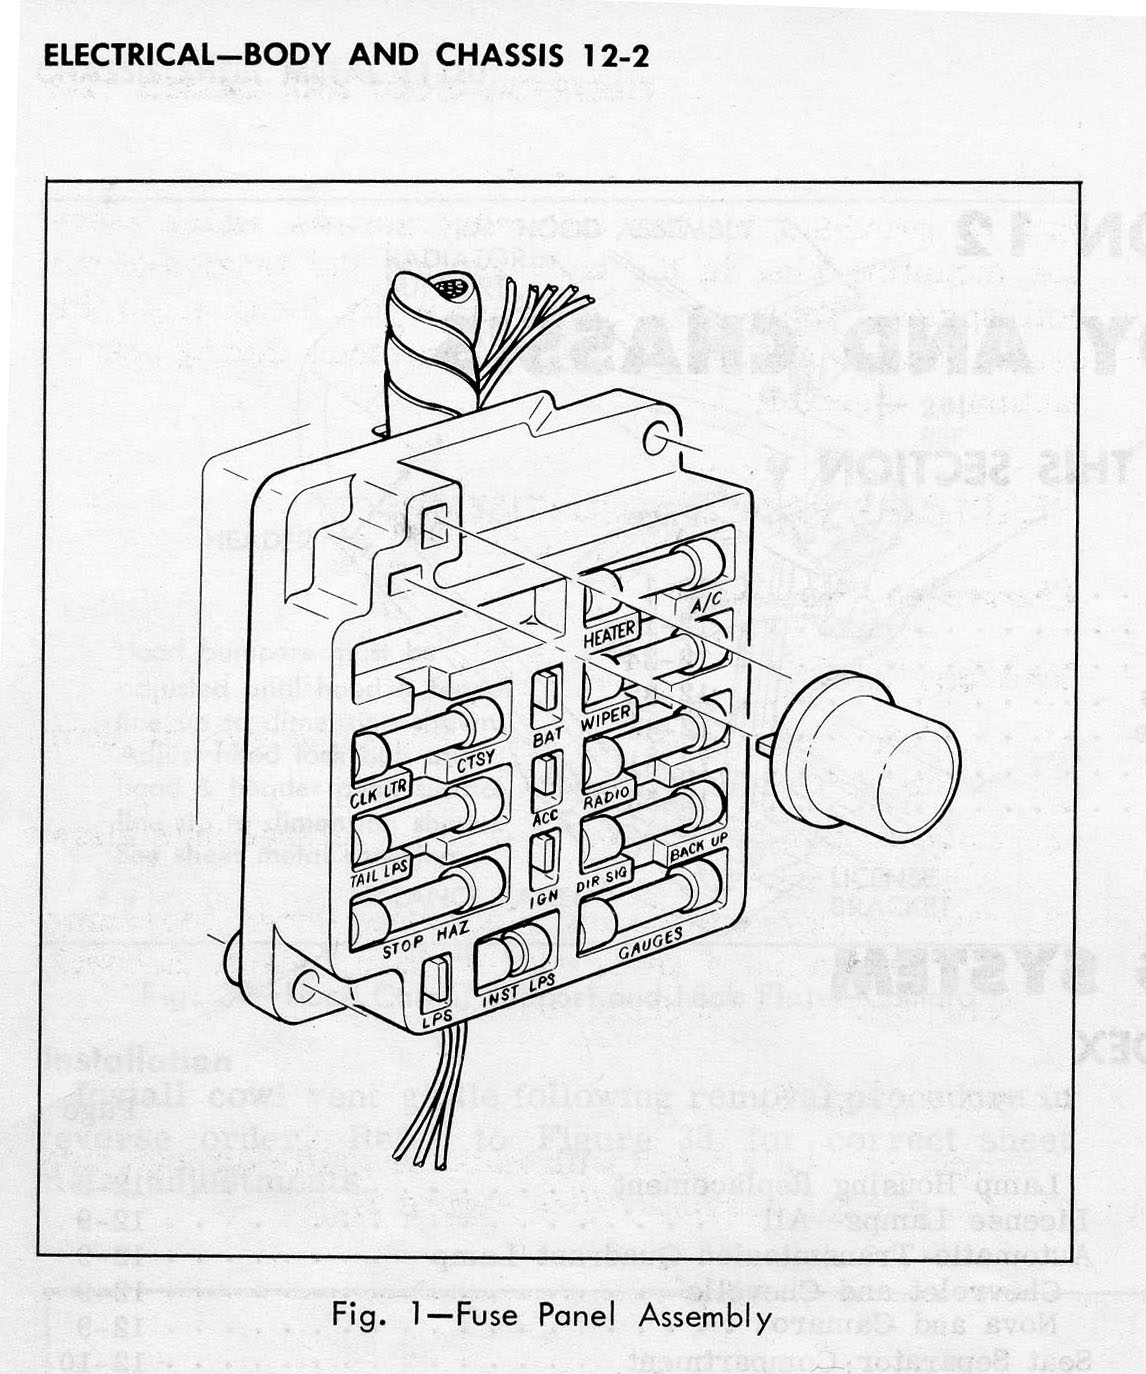 1968 Corvette Fuse Box Diagram Wiring Schematics Alternator Wire Data Schema U2022 1977